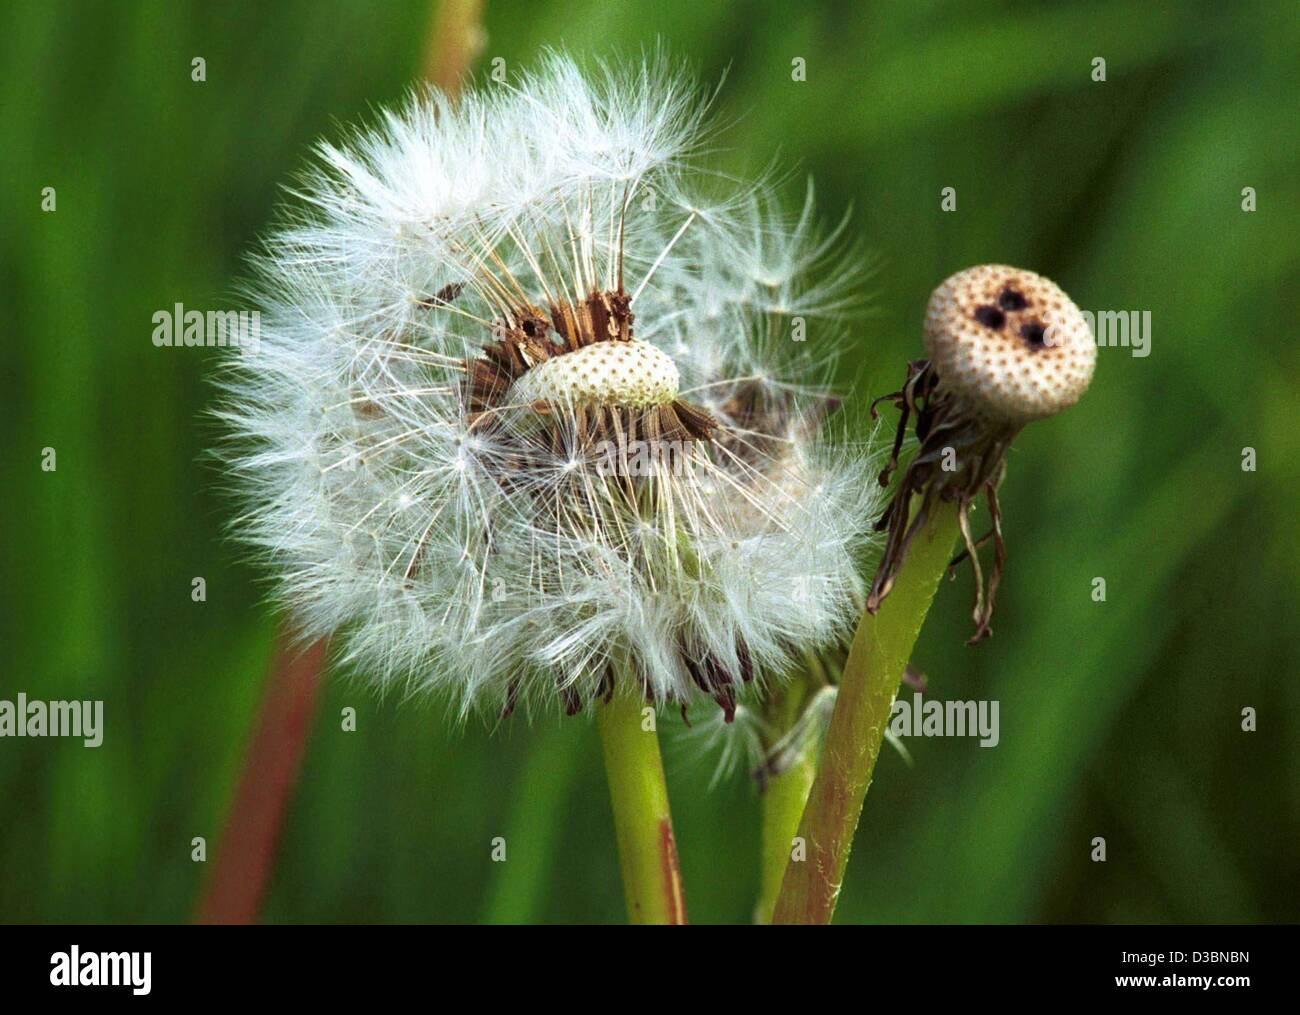 (dpa) - A mature dandelion has changed from a yellow bloom into a blowball with parachute-like plumed seeds, Heckendalheim, - Stock Image